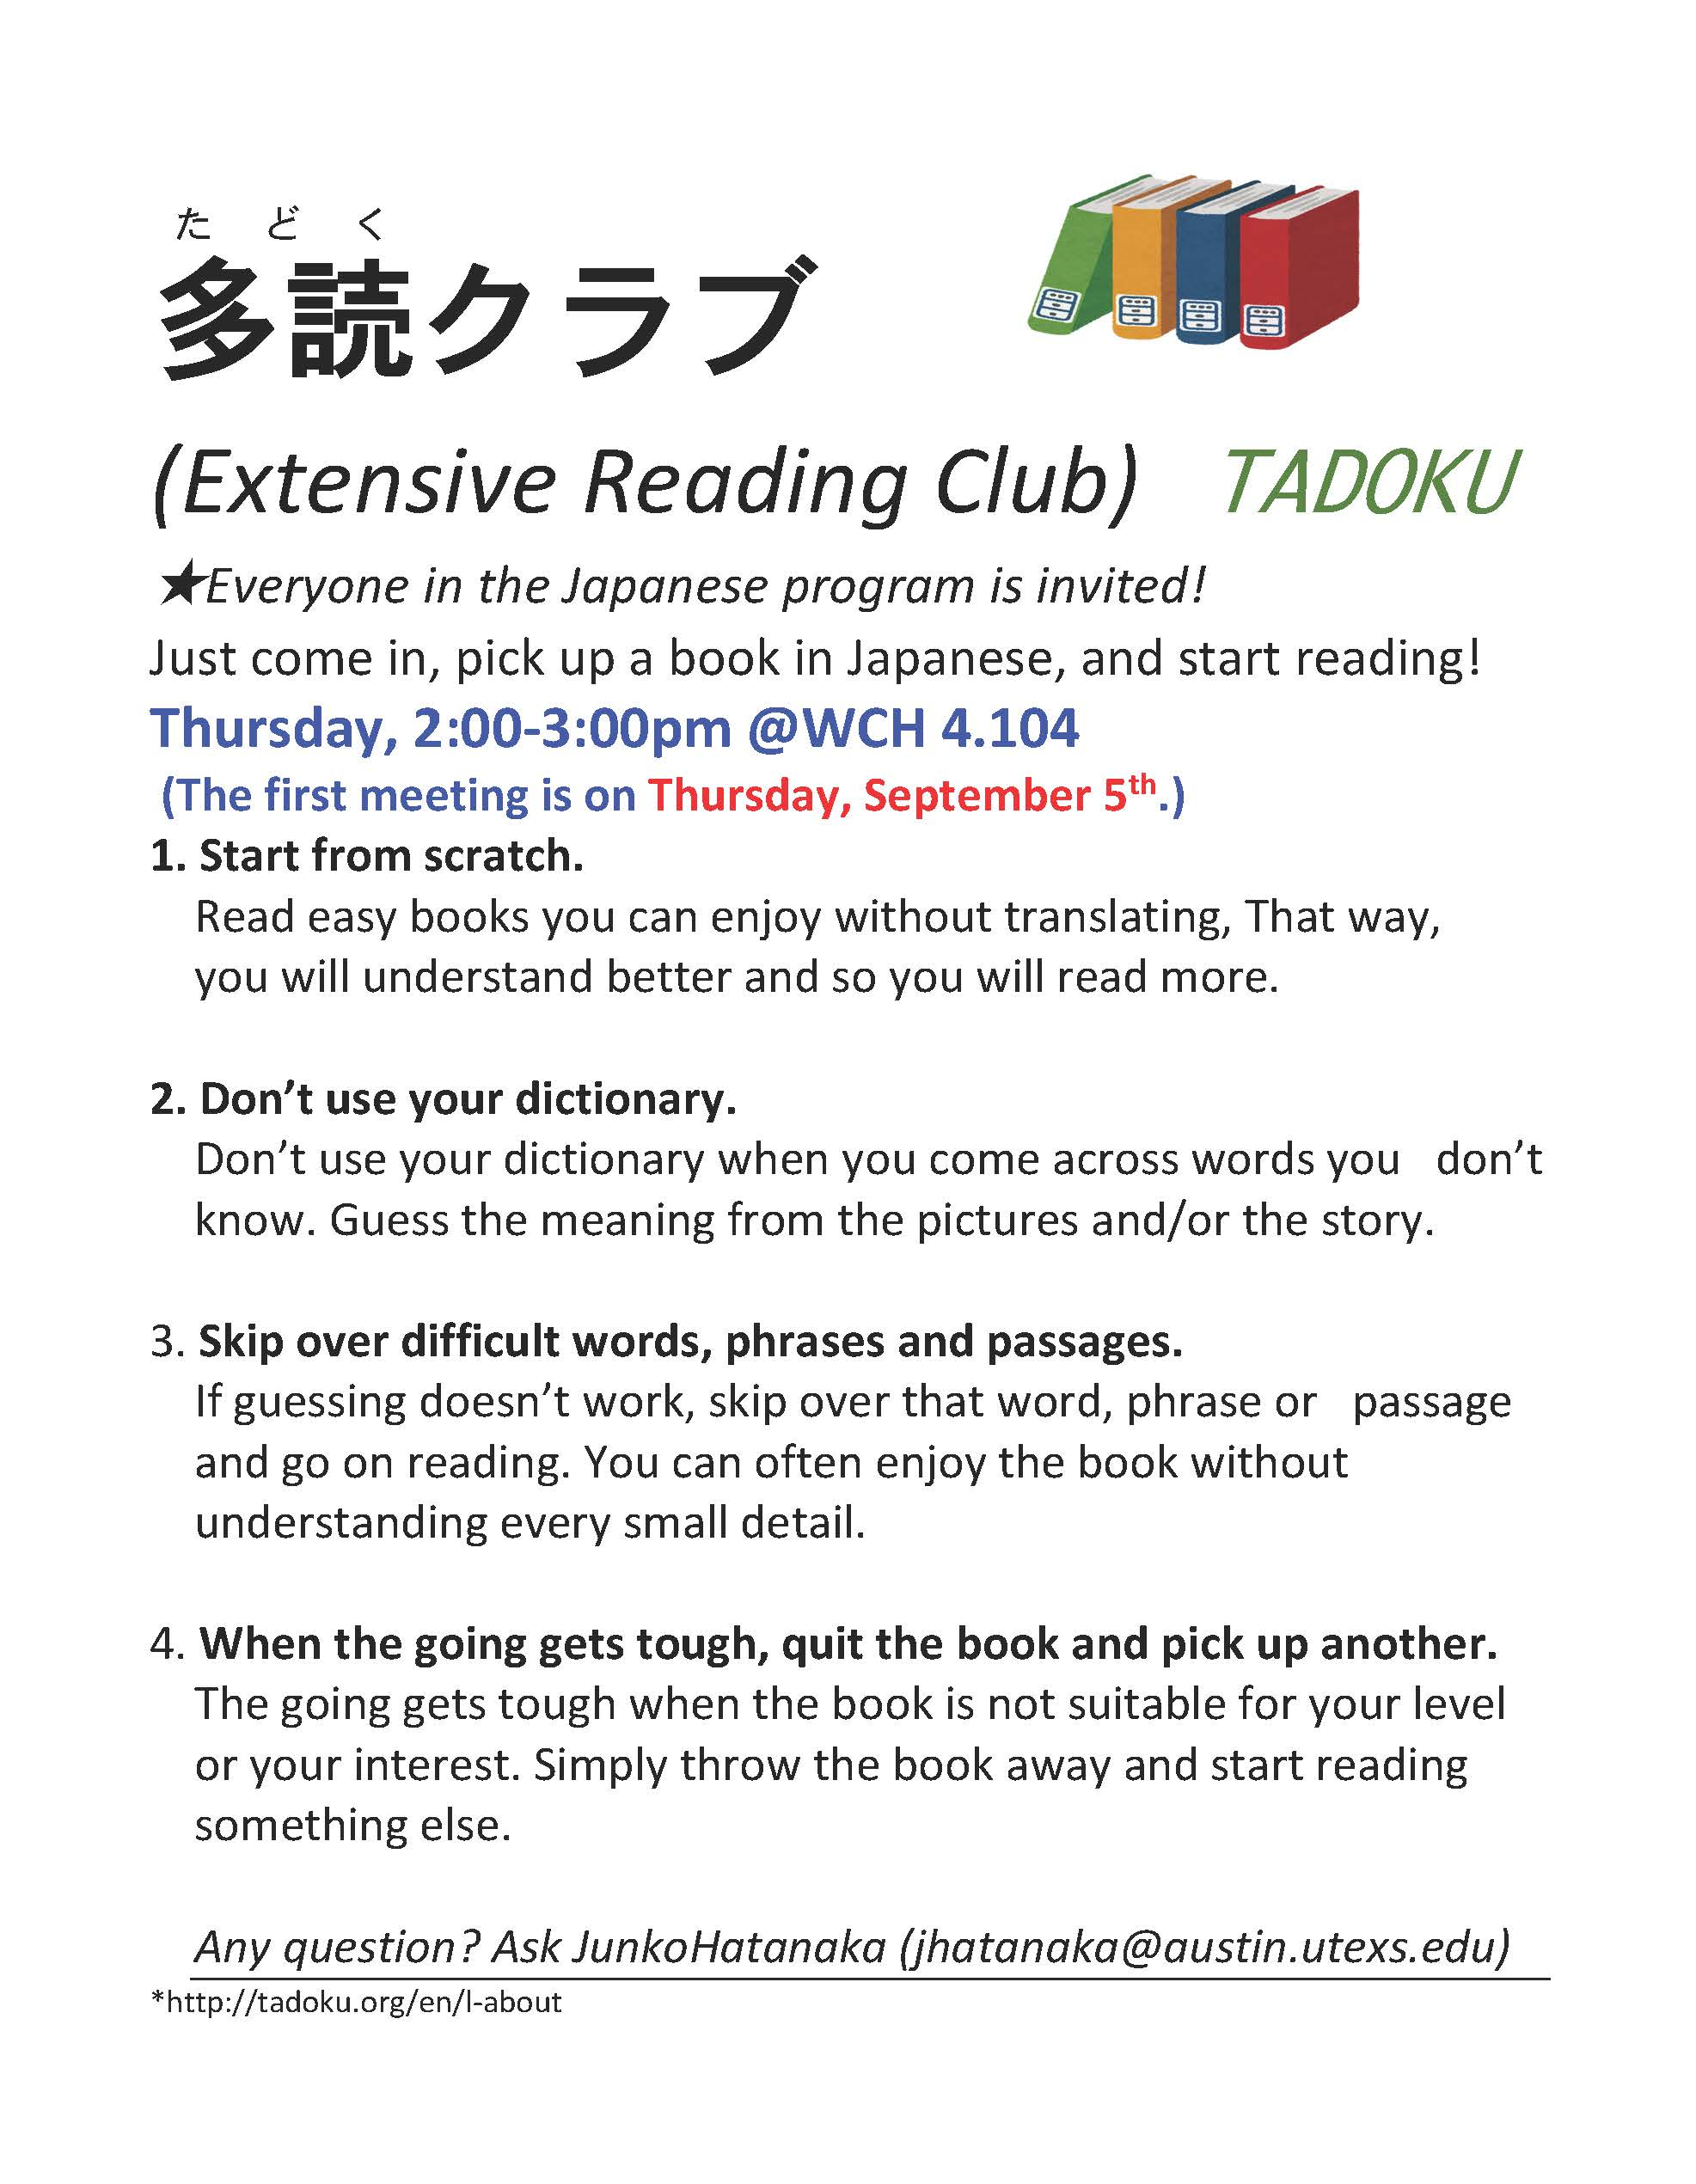 Japanese Extensive Reading Club